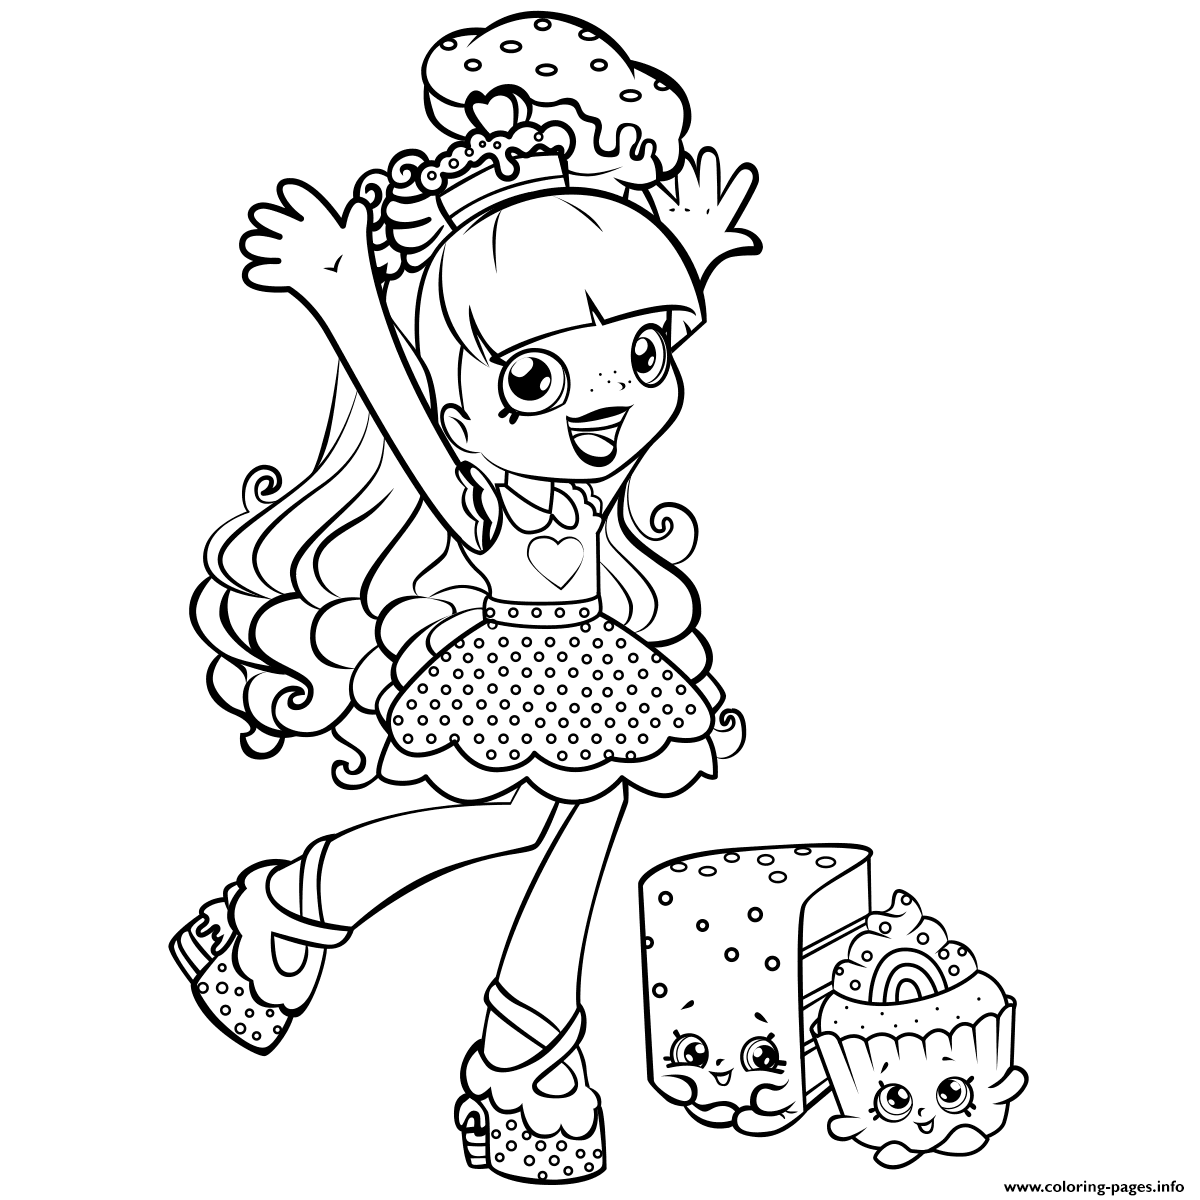 Shopkins Shoppies Coloring Pages Print Download 516 Prints